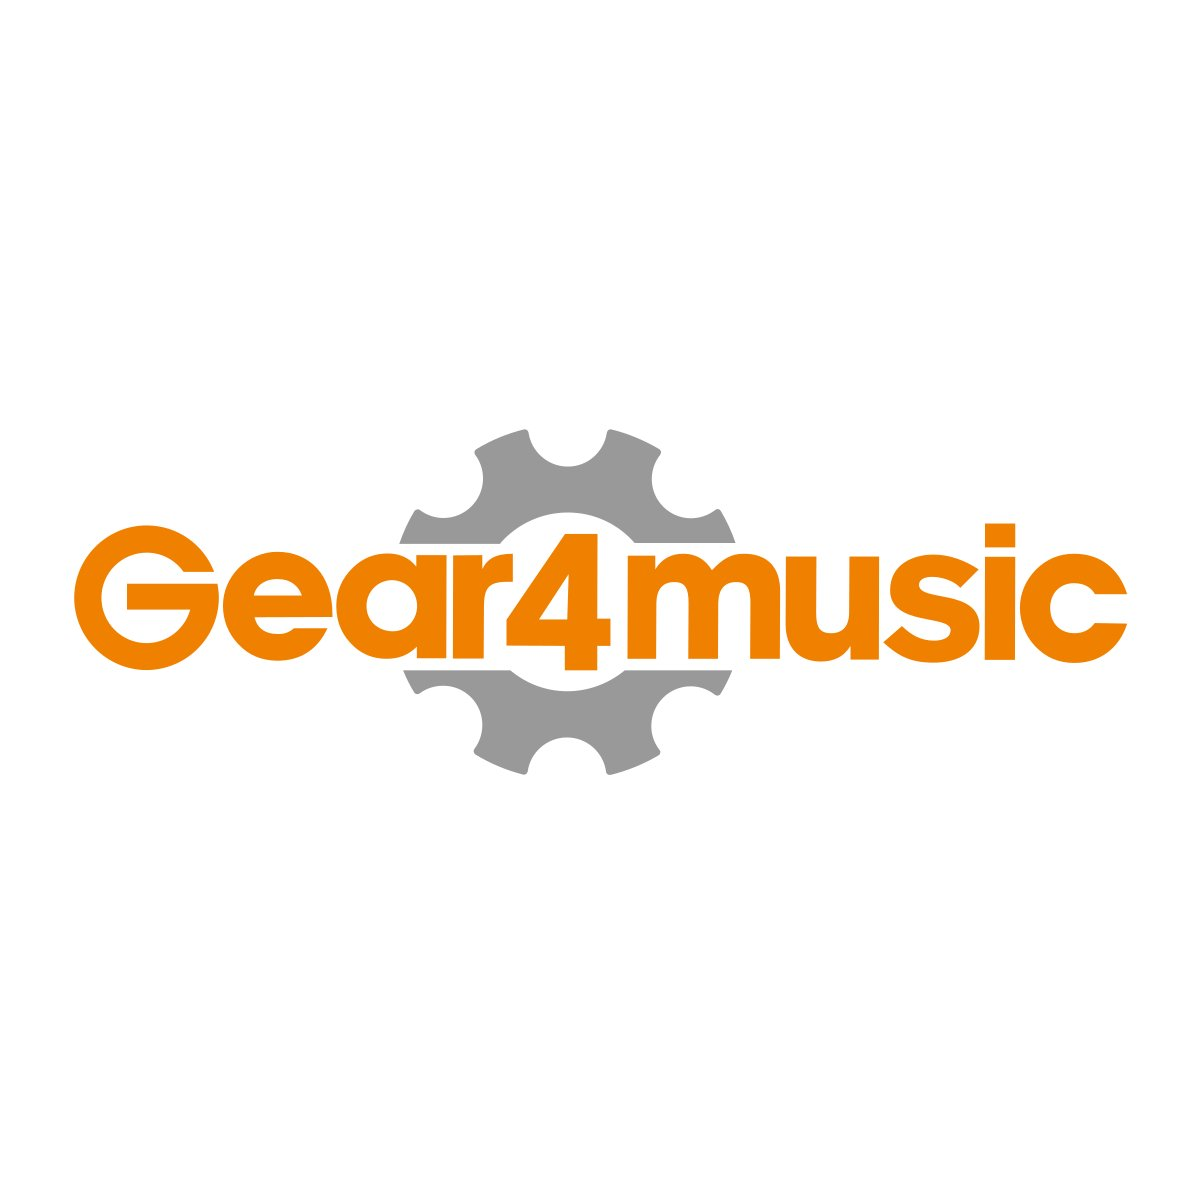 Behringer djx900 pro usb table de mixage dj gear4music - Table de mixage behringer ...